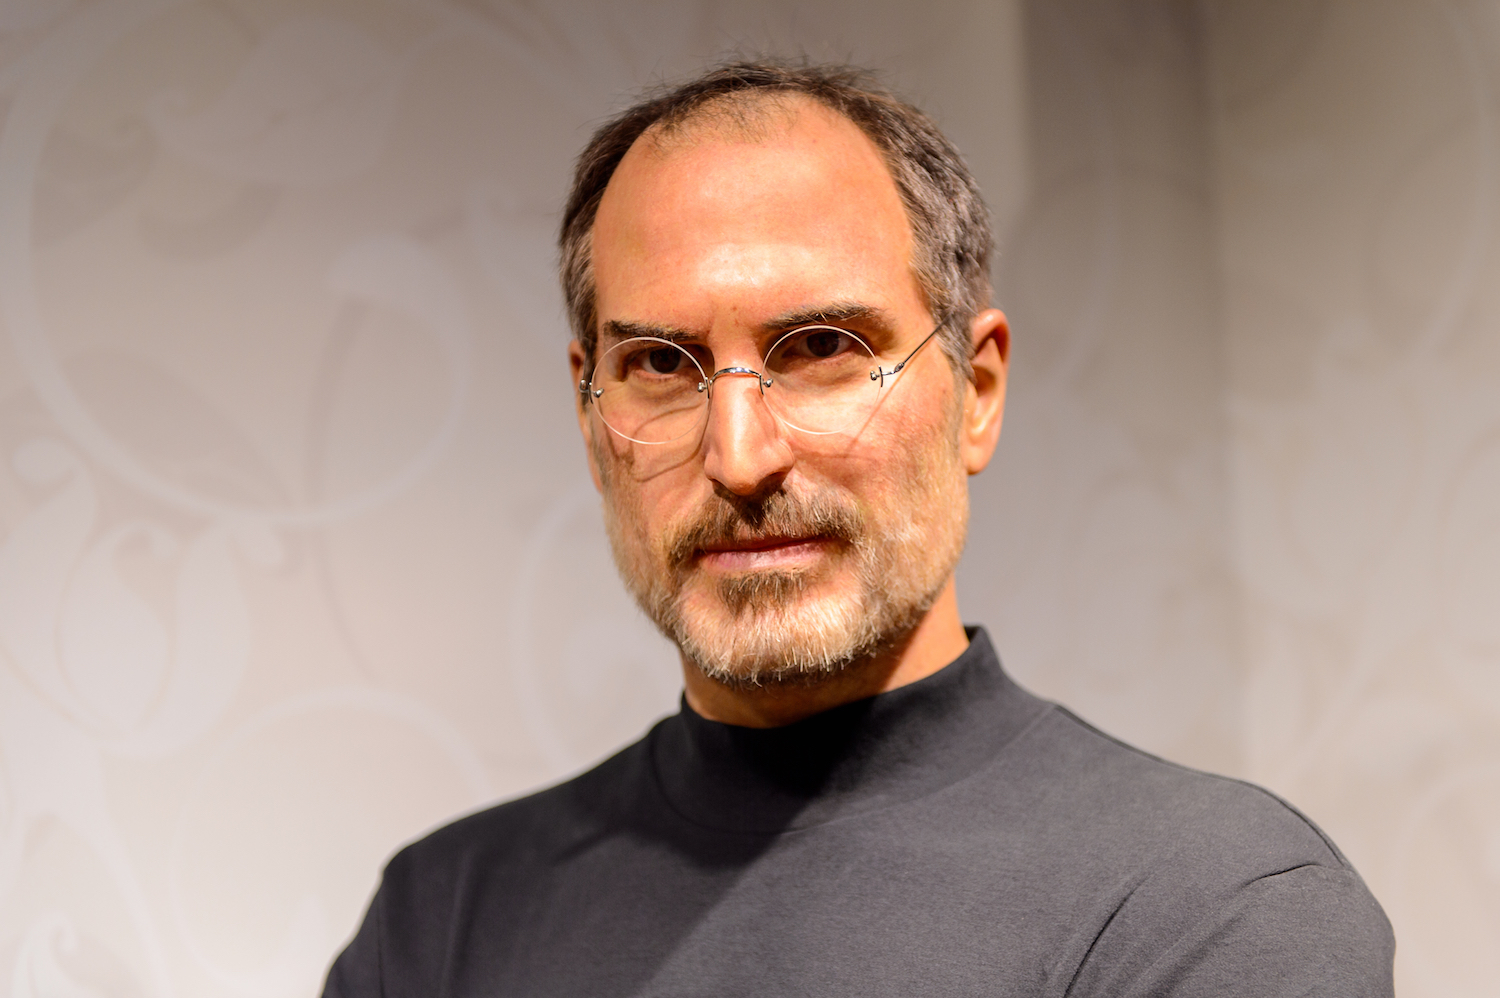 entrepreneur quotes, steve jobs